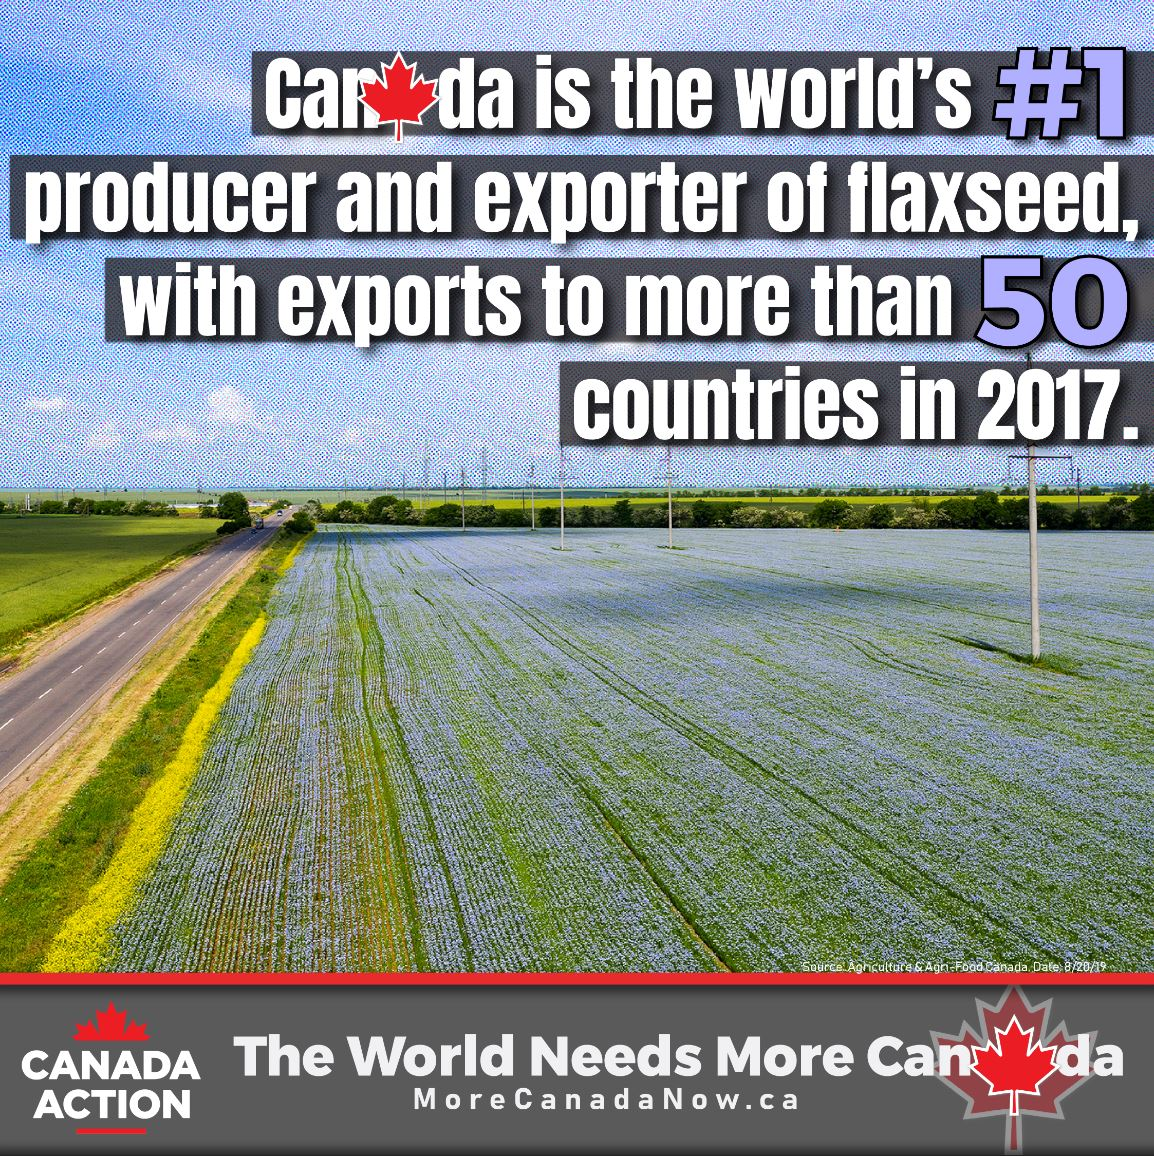 flaxseed in canada - world's #1 producer and exporter of flaxseed